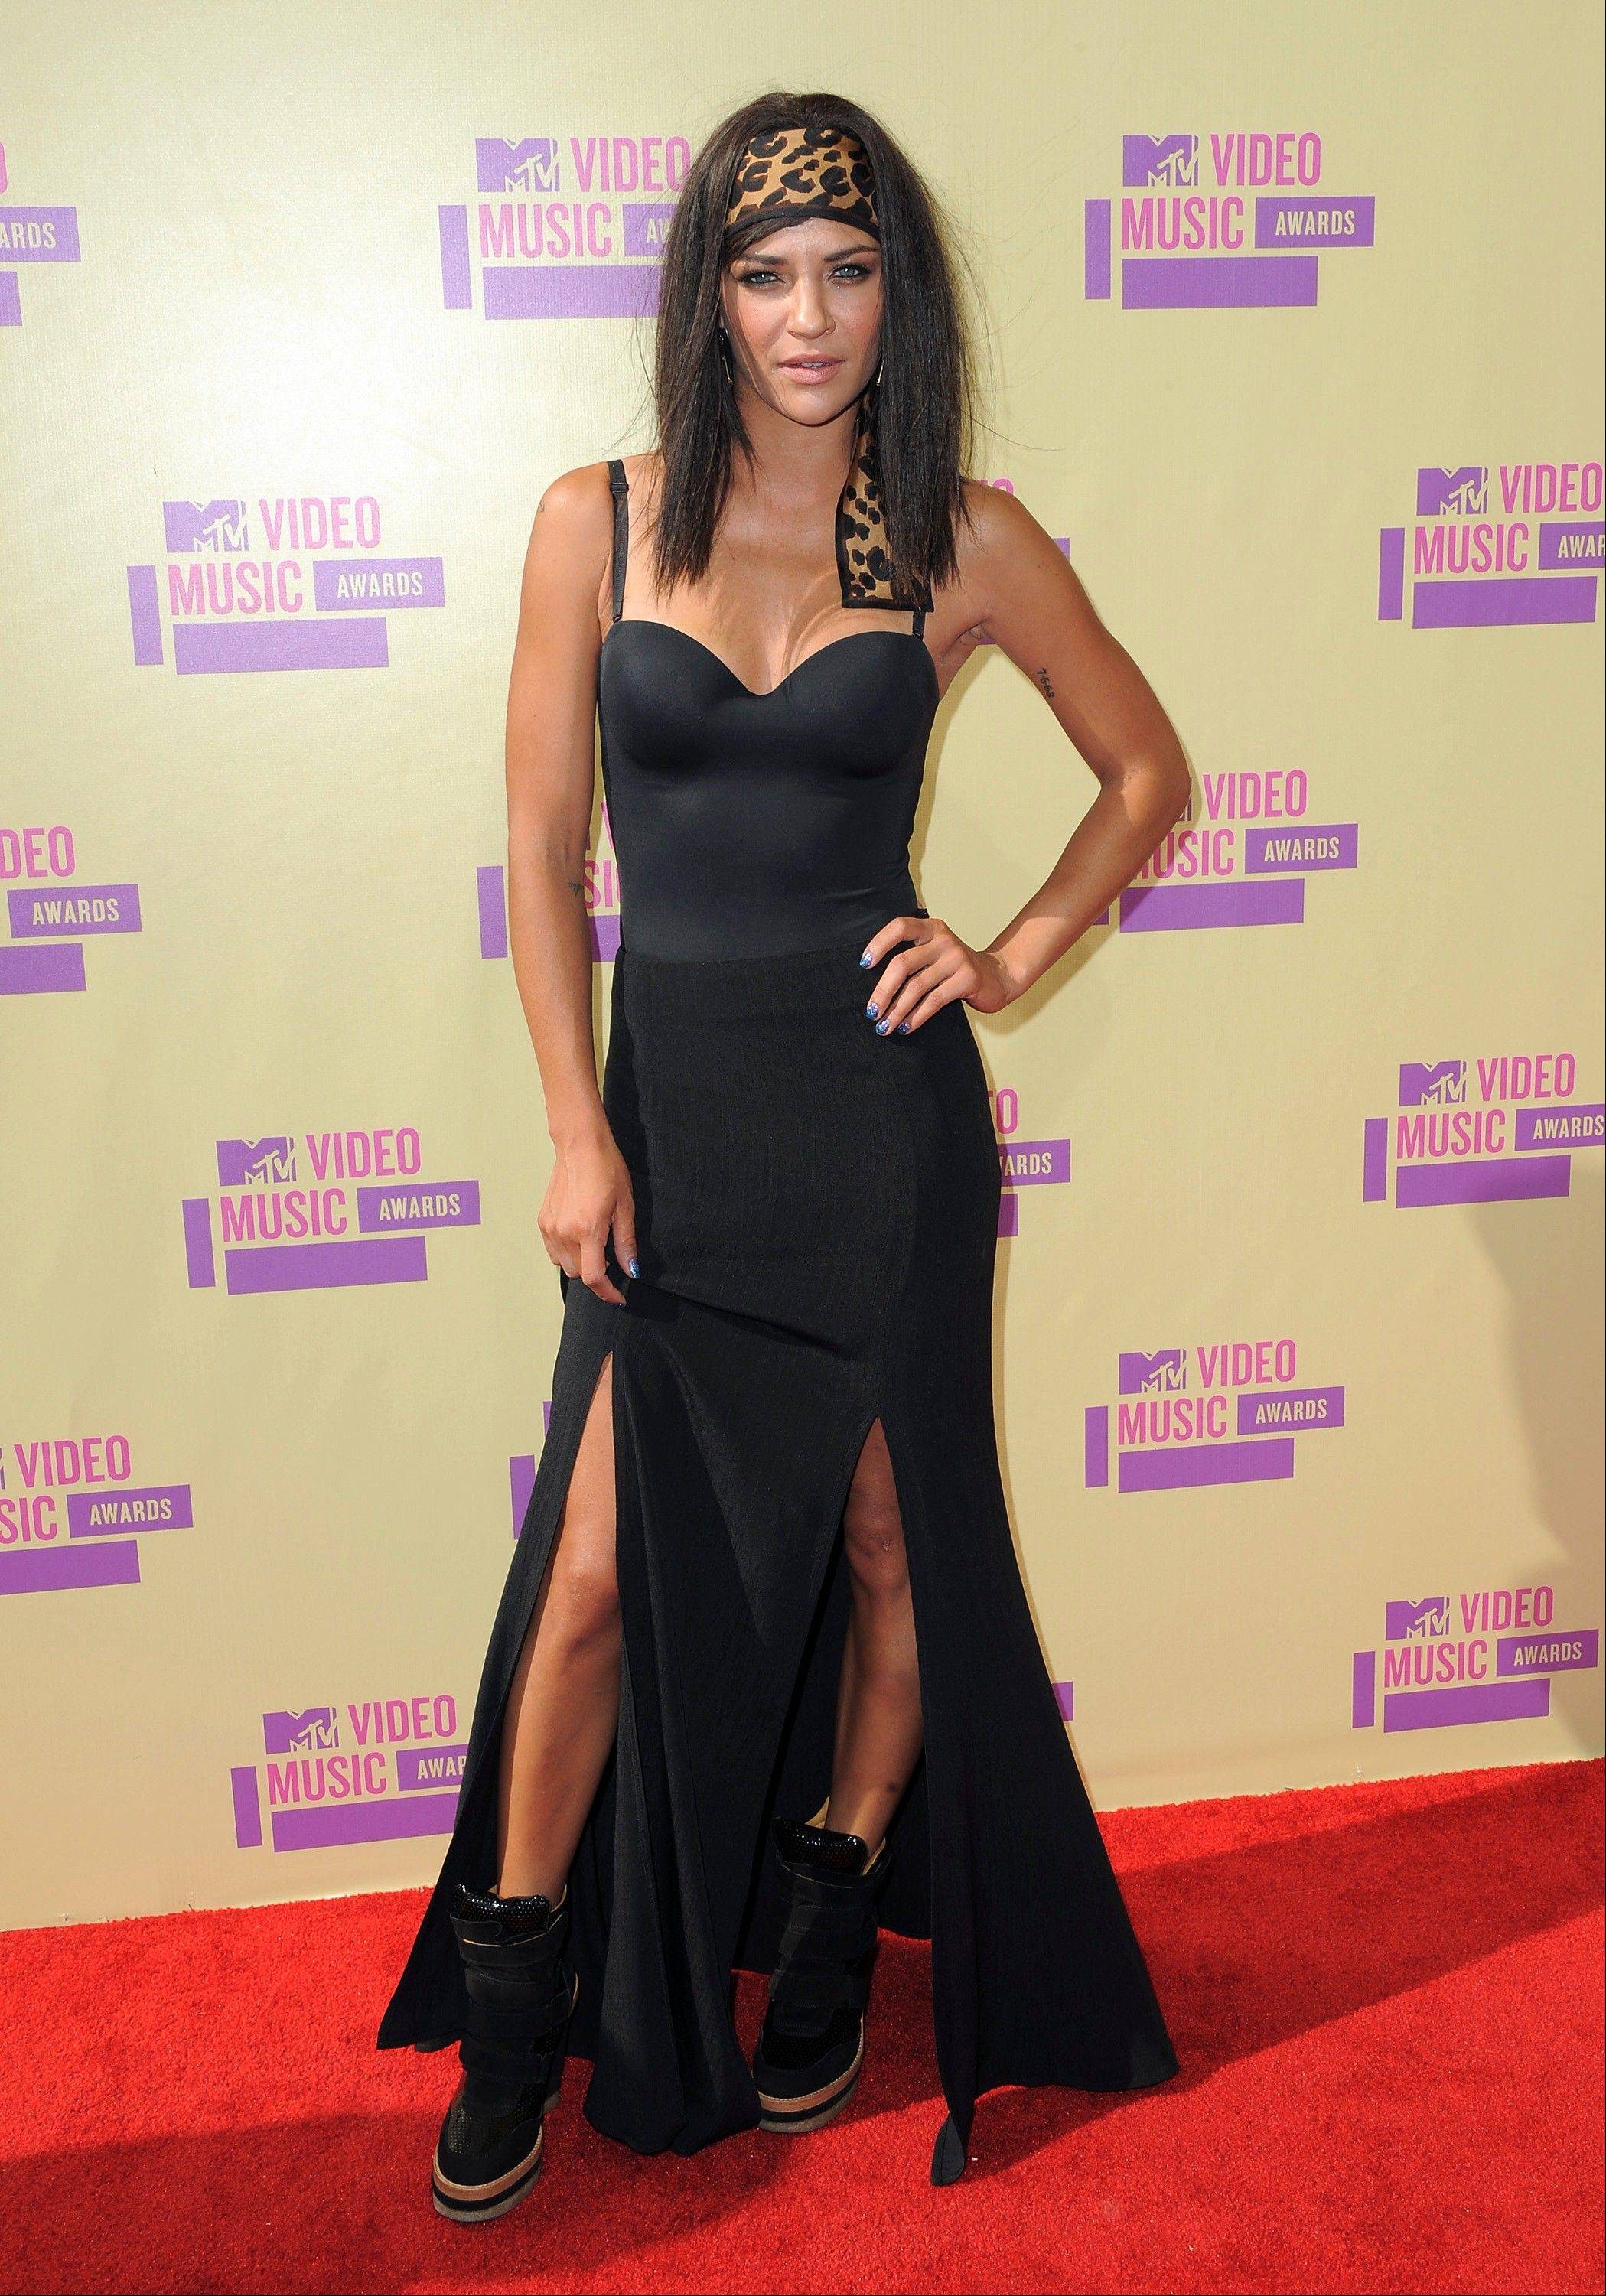 Actress Jessica Szohr attends the MTV Video Music Awards on Thursday, Sept. 6, 2012, in Los Angeles.